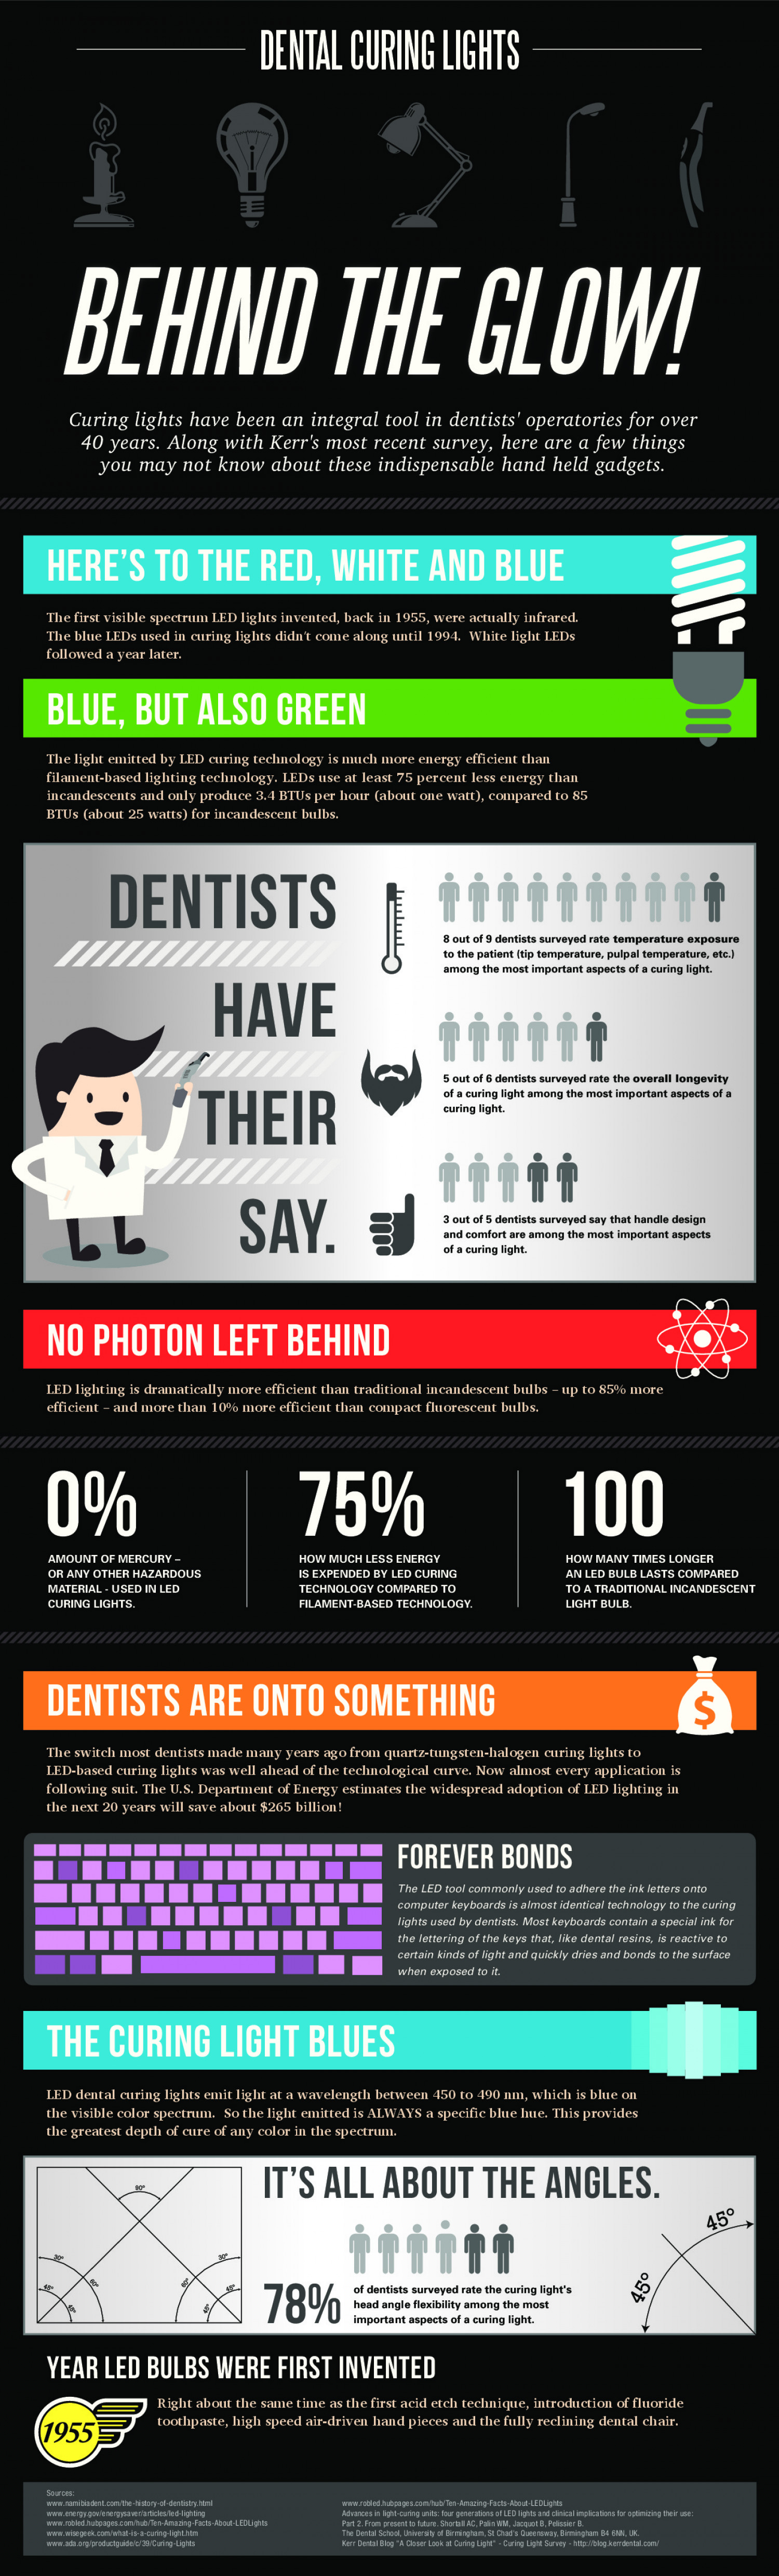 Dental Curing Lights - Behind the Glow Infographic